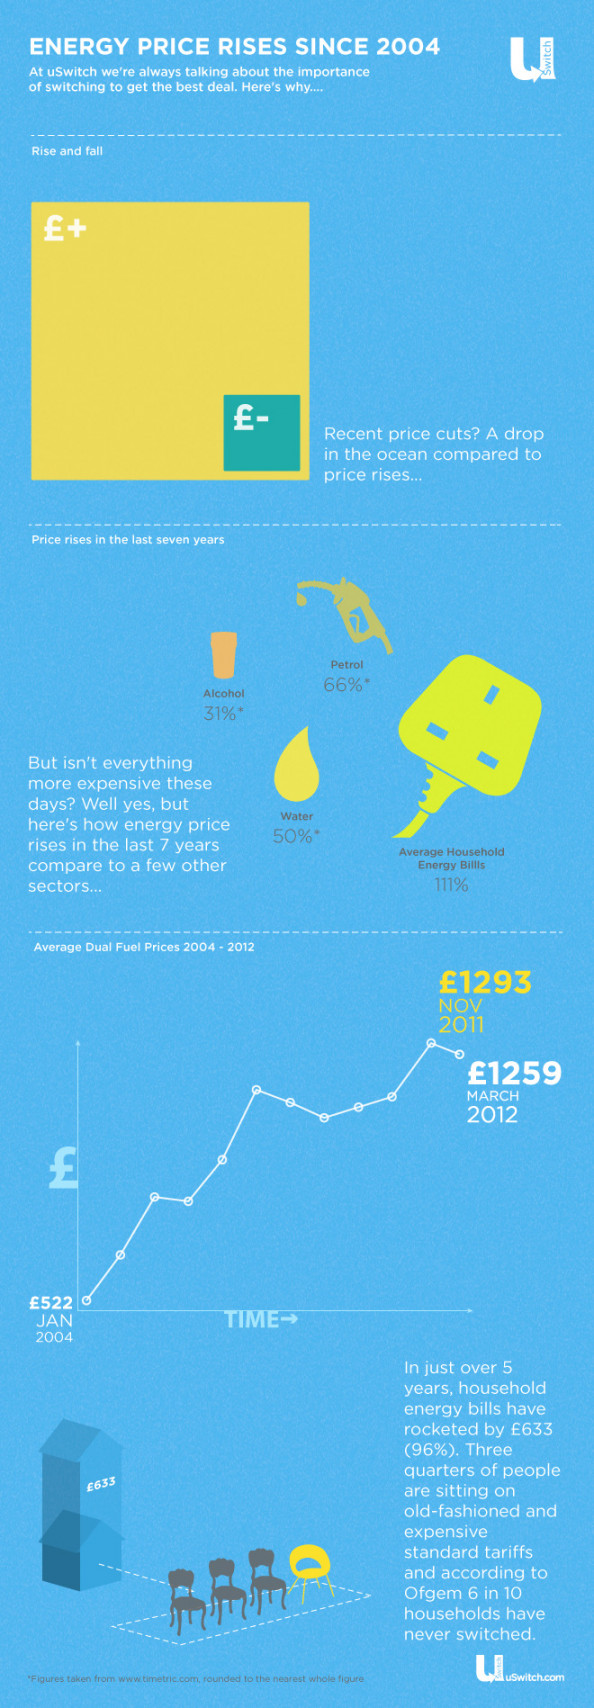 Price rises in the UK since 2004 Infographic